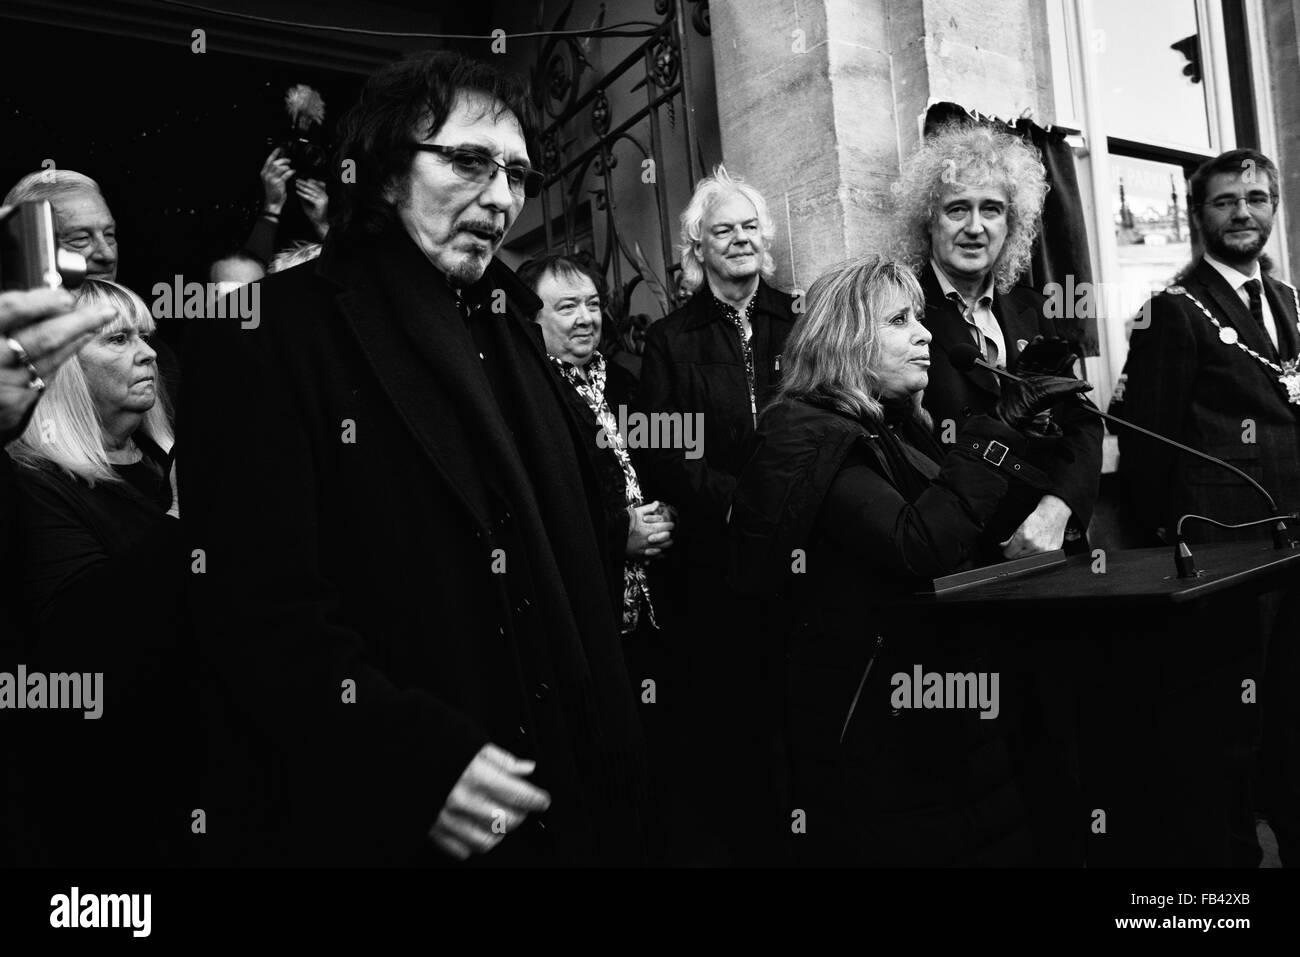 Blue Plaque Event In Cirencester 7/1/2016 To Commemorate Cozy Powell Drummer With Legendary Rock Groups With Dr - Stock Image